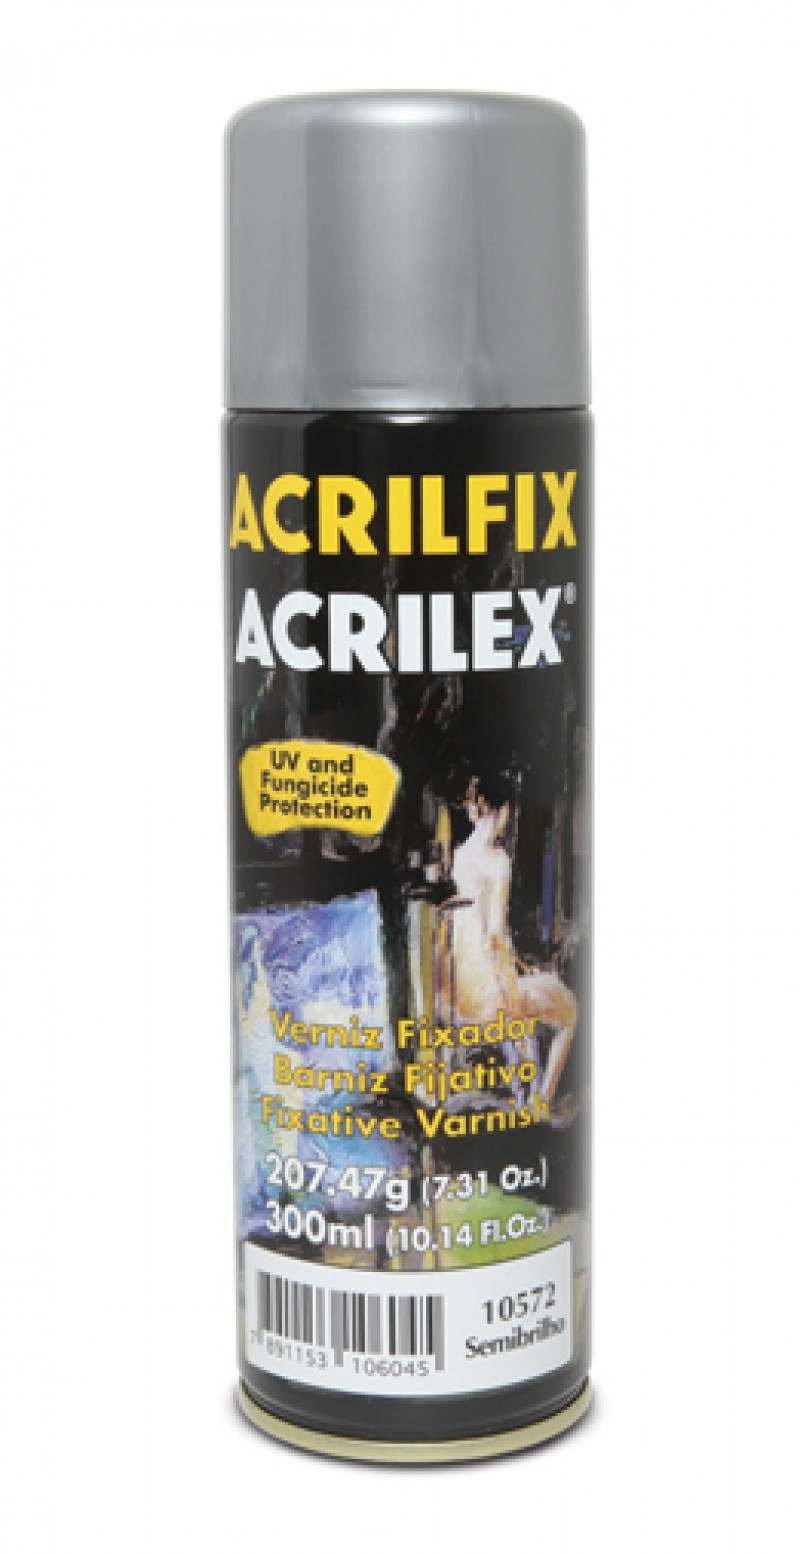 Foto 1 - Cód M1539 Verniz acrilfix acrilex spray fosco (Mate) 300ml